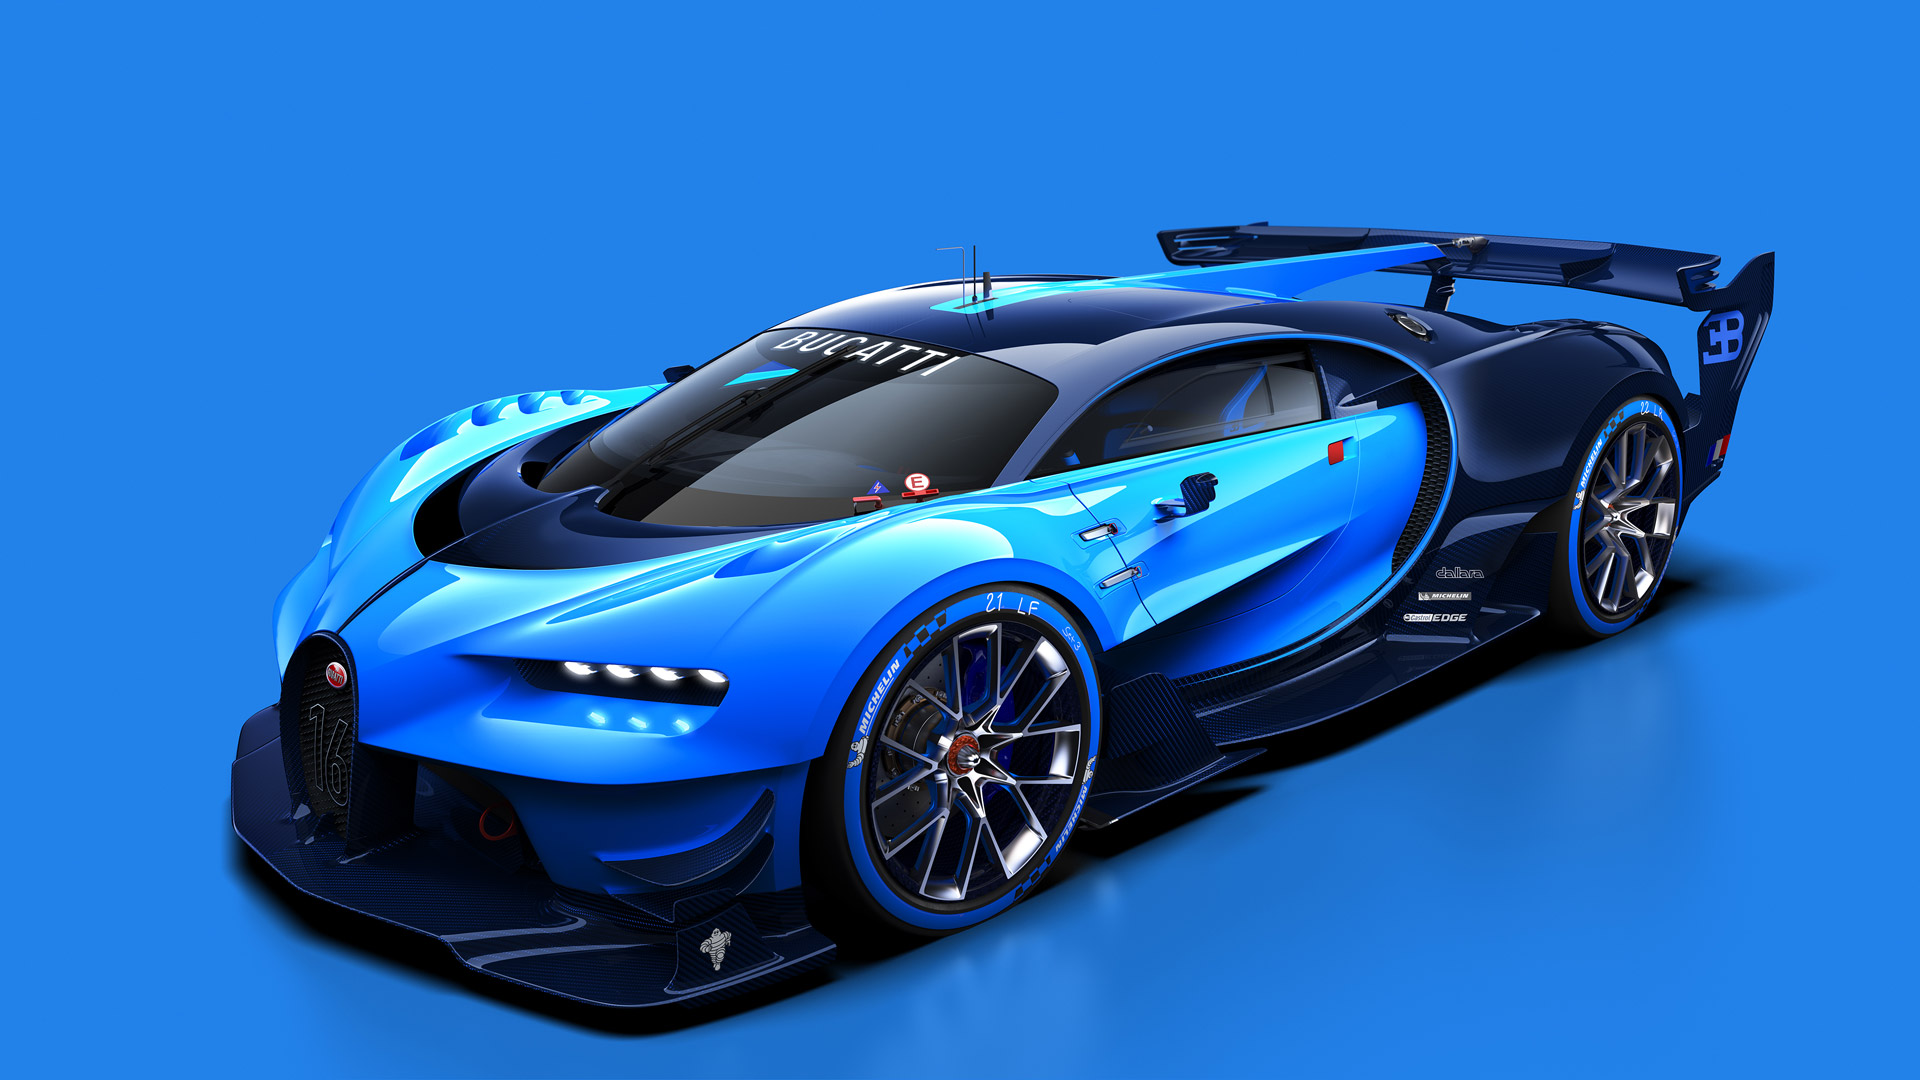 bugatti vision gran turismo concept 2015 frankfurt auto show 100525177. Black Bedroom Furniture Sets. Home Design Ideas